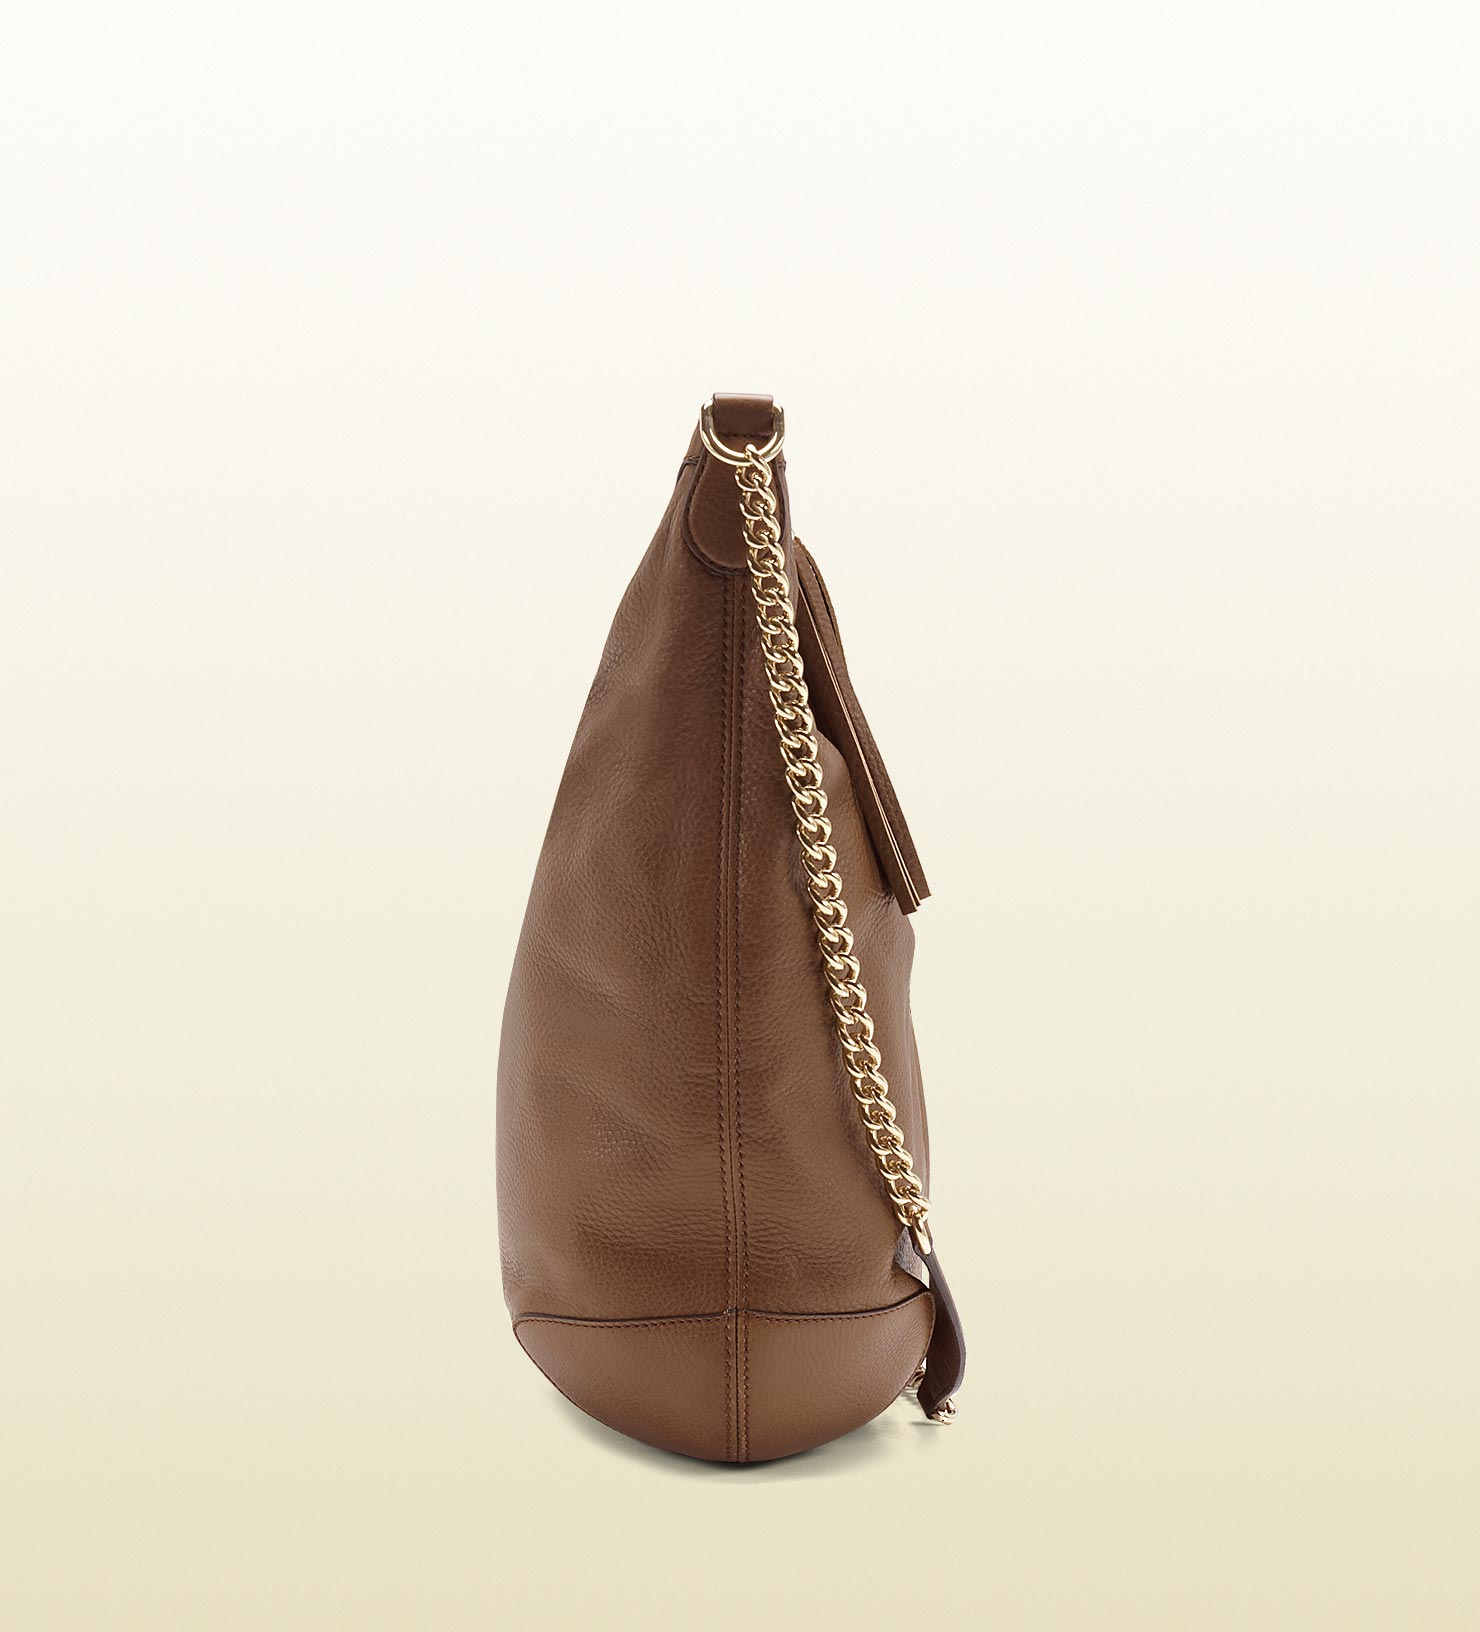 4f383539175 Lyst - Gucci Soho Maple Brown Leather Shoulder Bag with Chain Strap ...